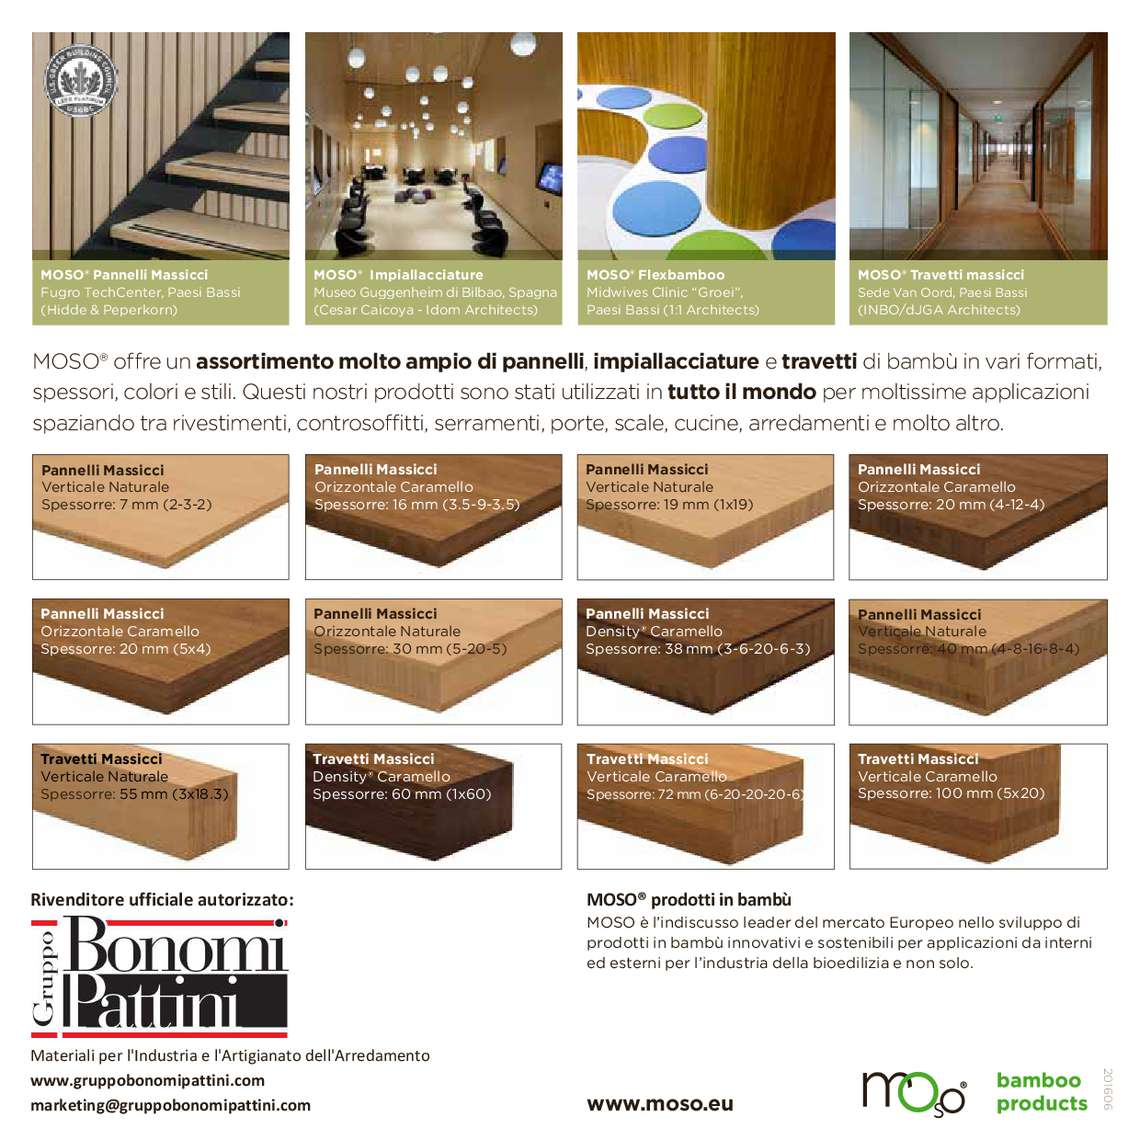 moso-bamboo-products_158_003.jpg